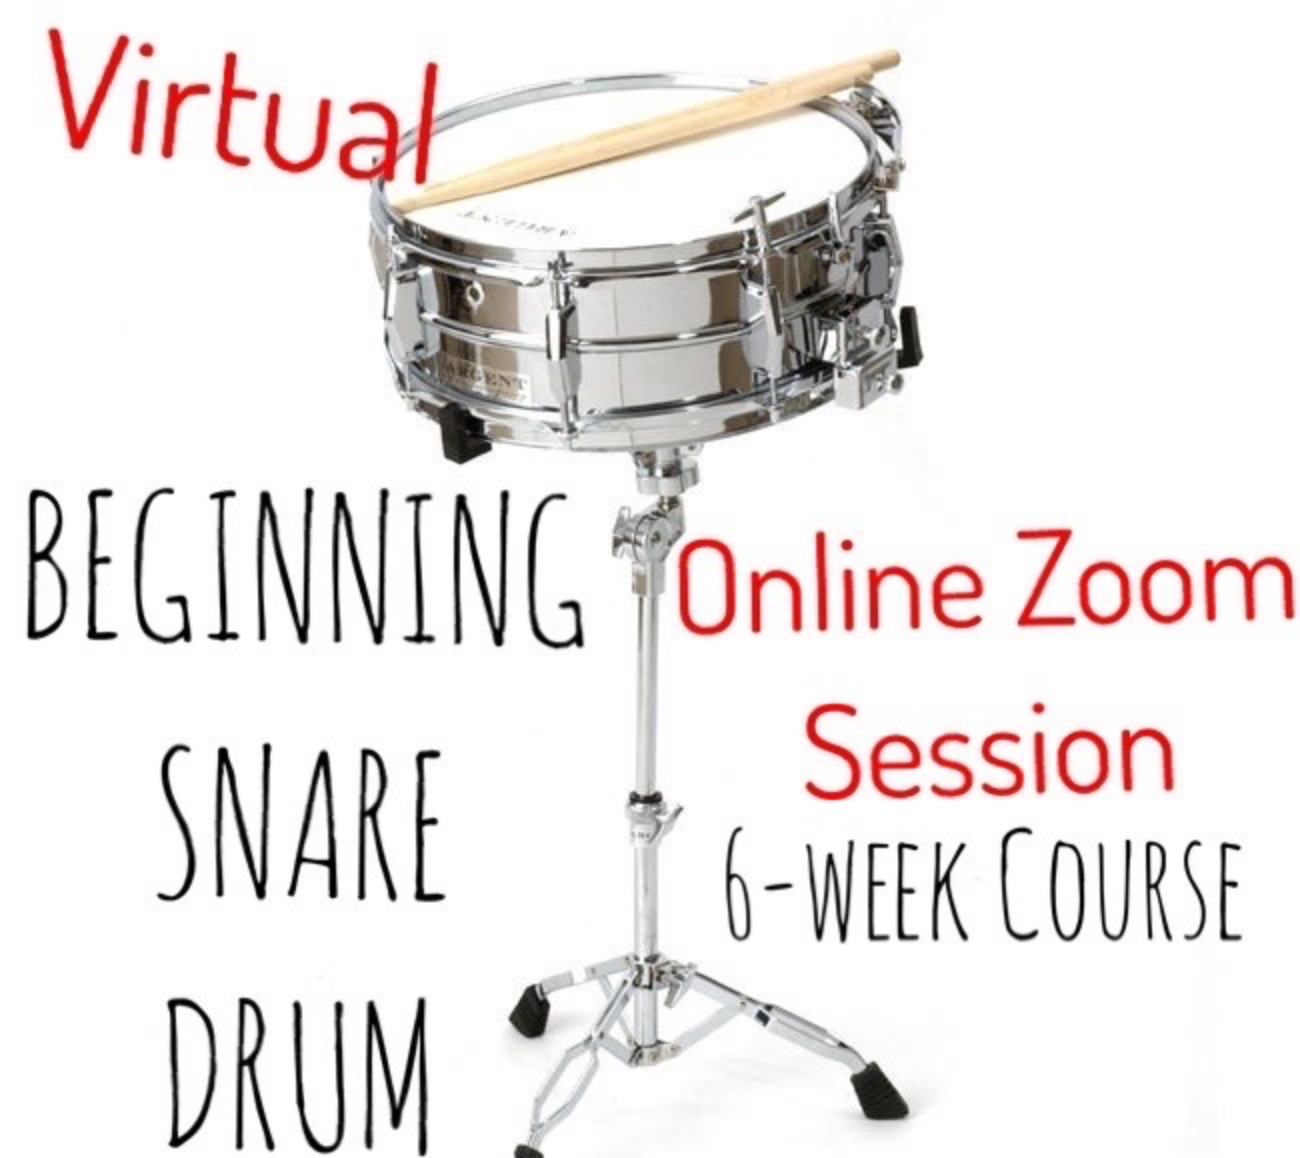 Virtual Beginning Snare Drum 6-Week Zoom Class Oct/Nov 2020